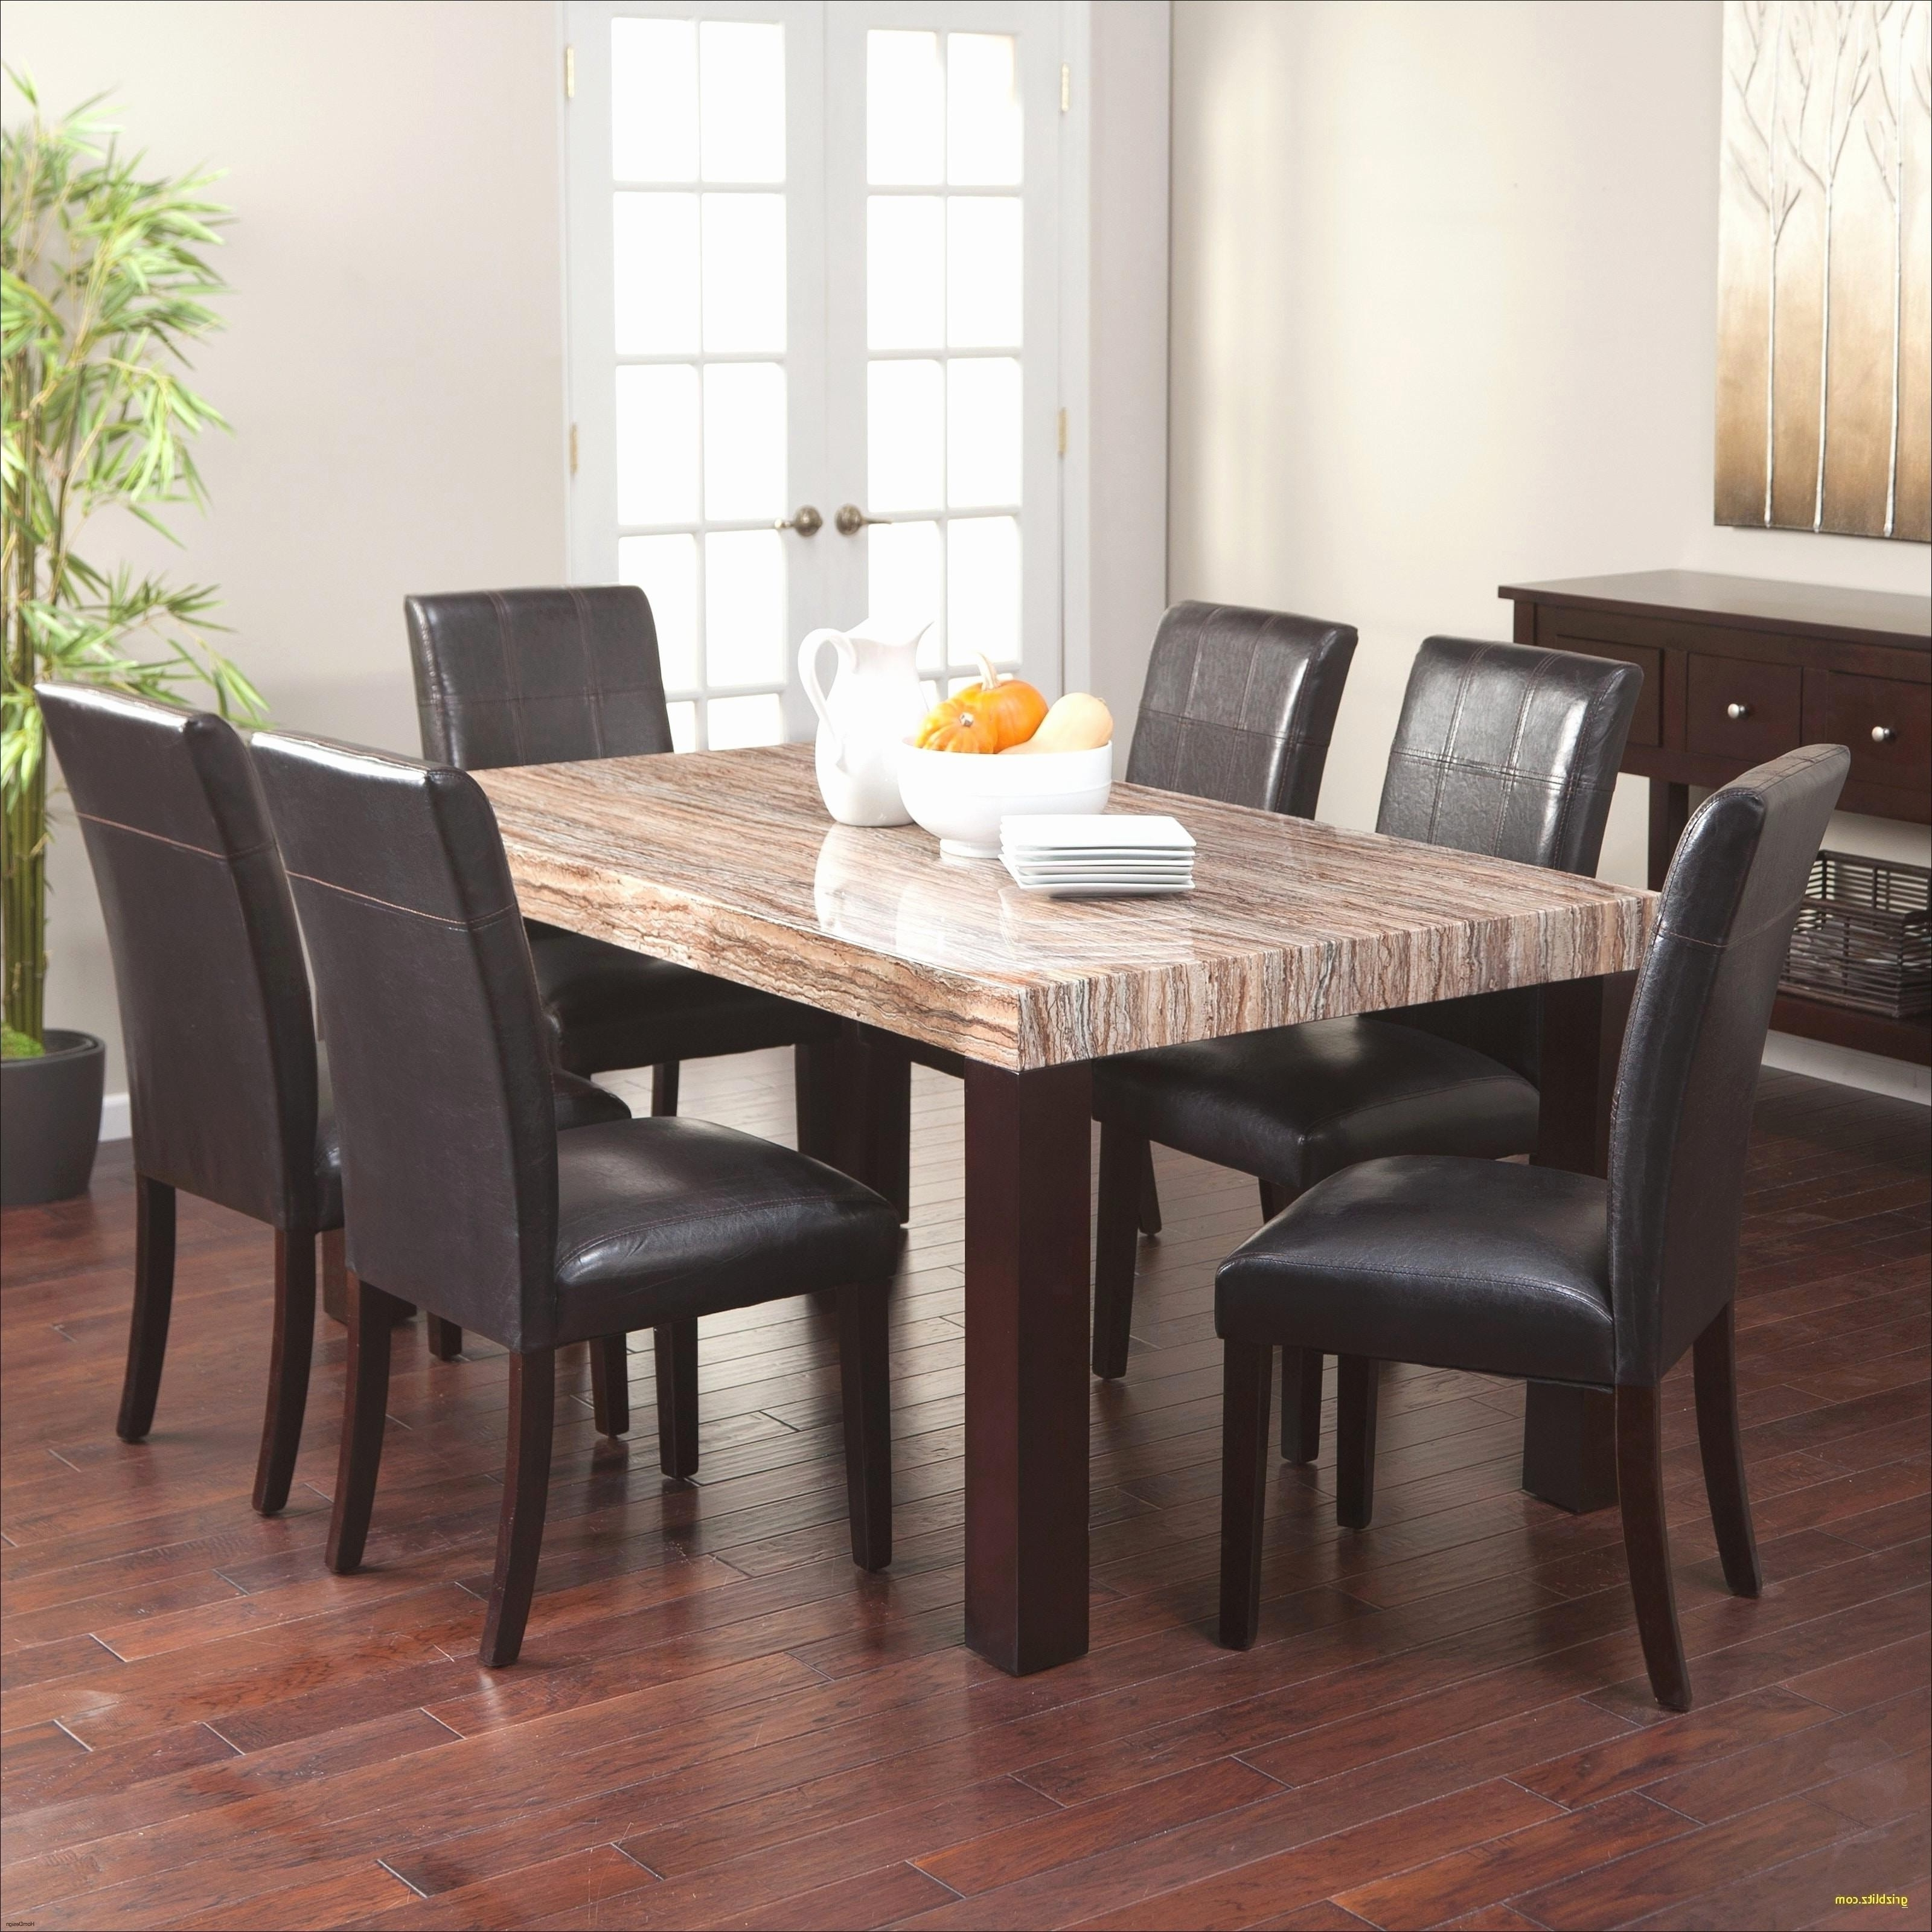 Most Recently Released Glass Dining Tables And Chairs Inside Round Glass Dining Table Sets For 4 Luxury Rectangular Glass Dining (View 16 of 25)